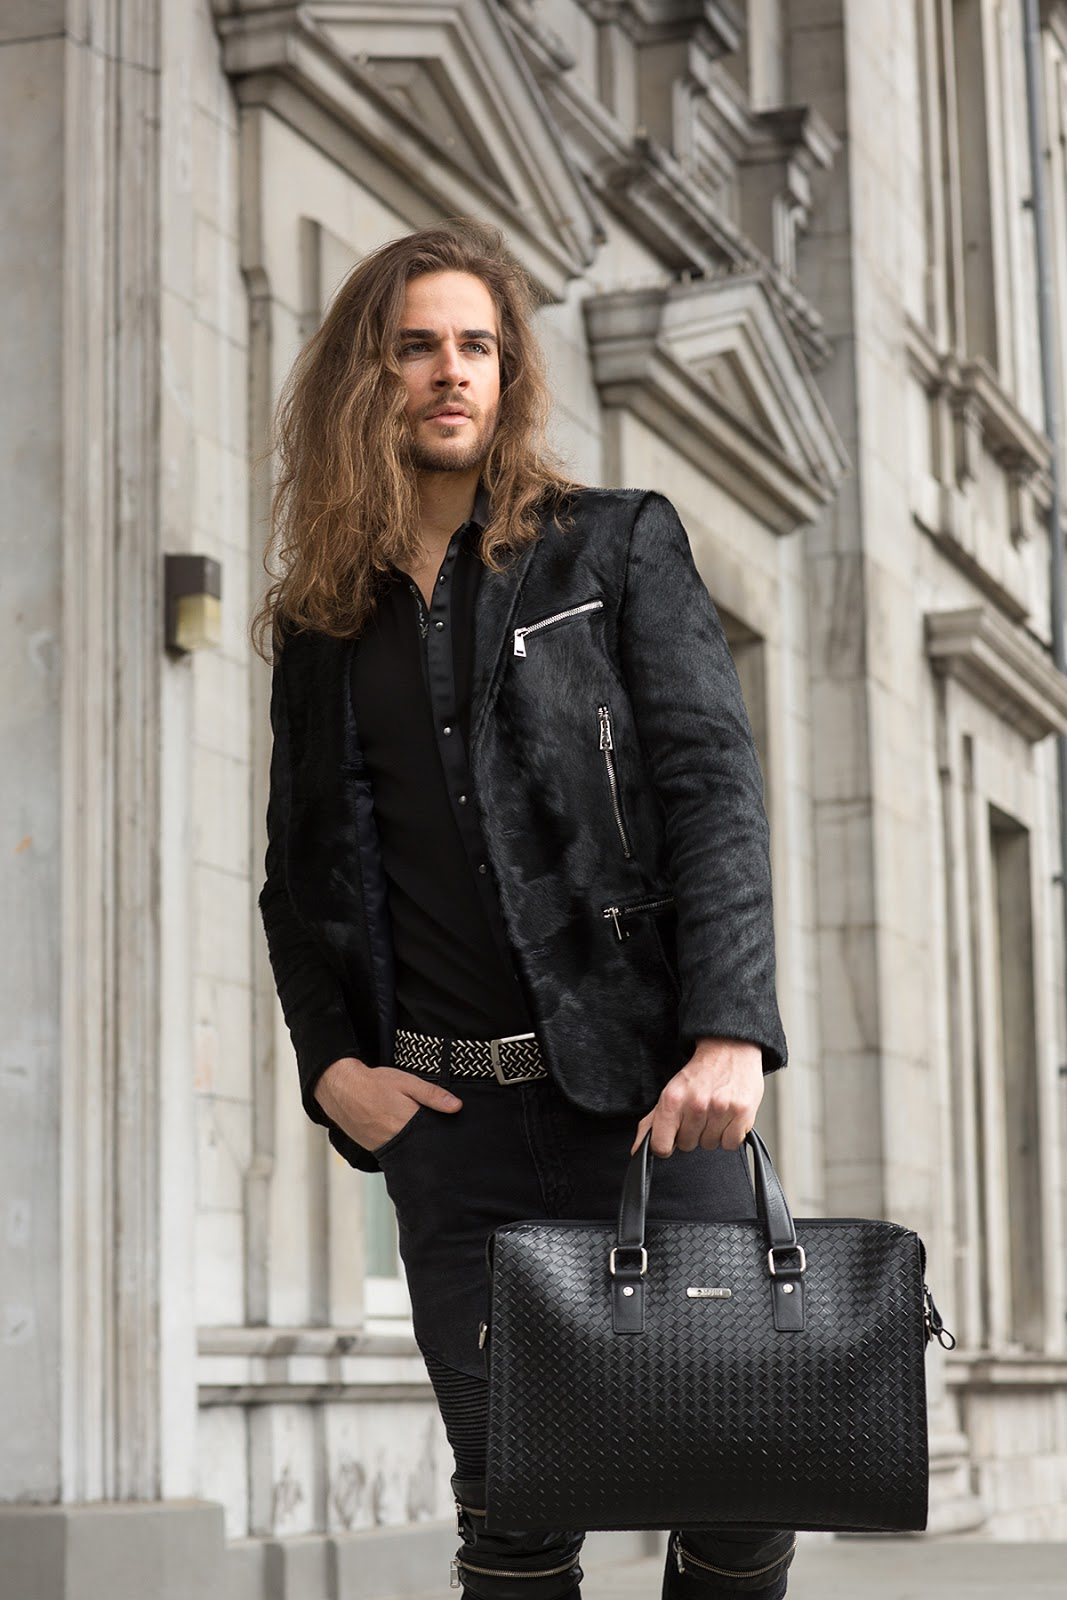 Leading Leather Brand Mcjim Shoots New Ad Campaign In Montreal Canada Formula Sikat Gigi For Silver Pro Trendy The Setting Of Mcjims Latest Highlights Brands Traditional Yet Stylish